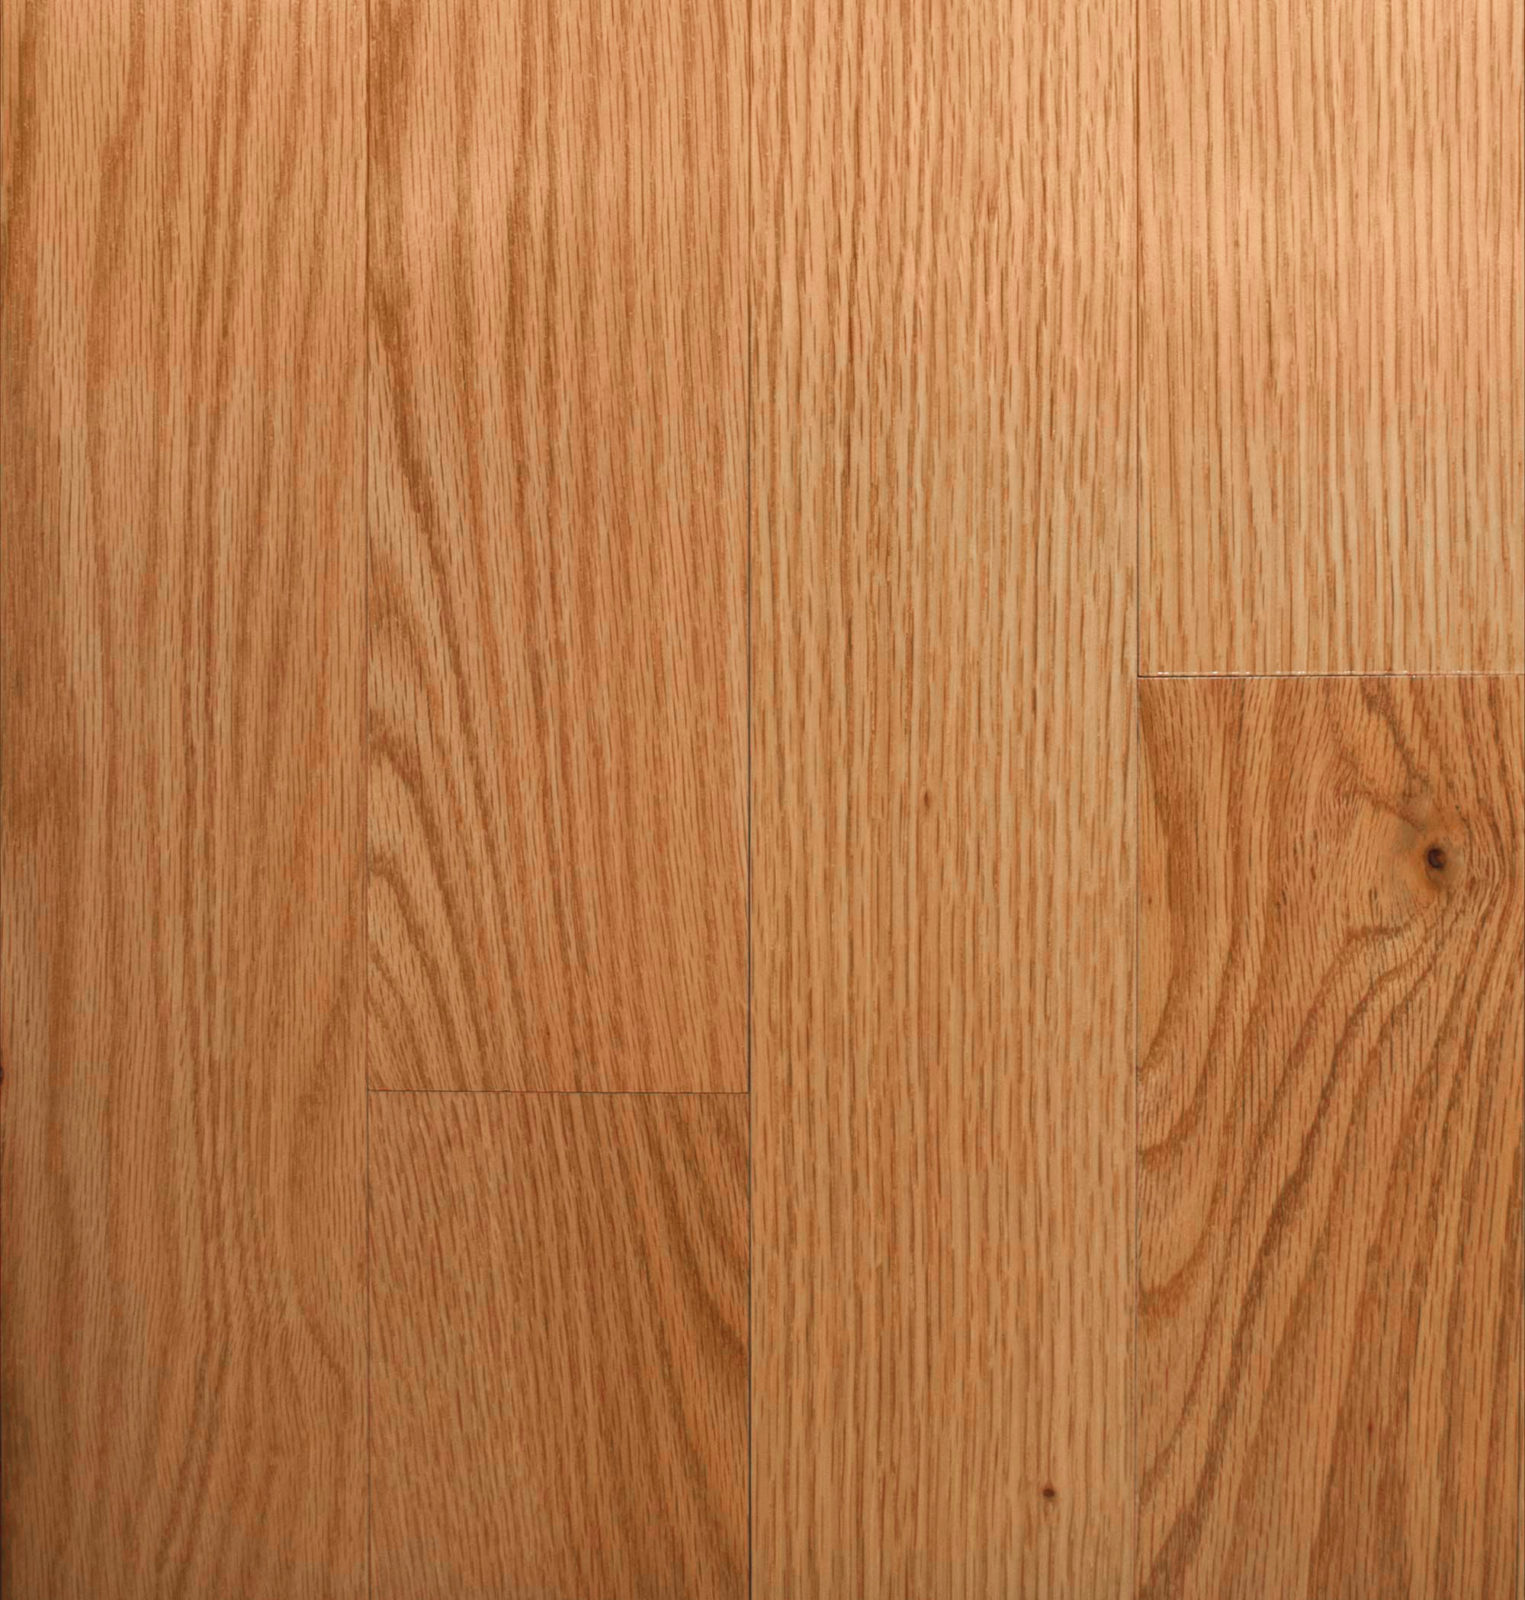 3 1 4 x 3 4 mohawk red oak natural schillings for Mohawk hardwood flooring